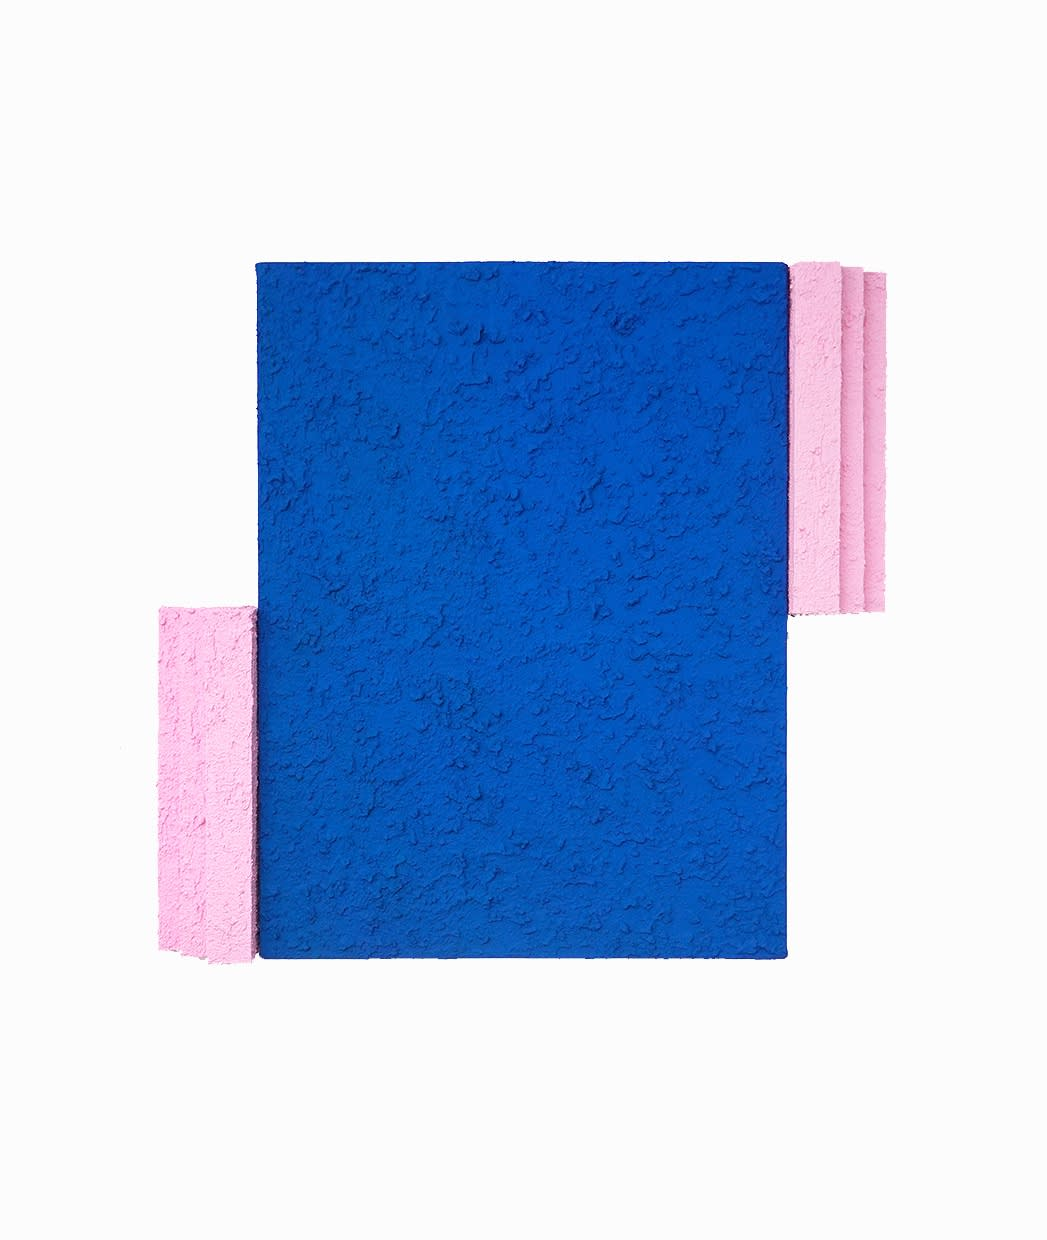 Eric Santoscoy-McKillip Piscina, 2021 Acrylic, flashe, and stucco on canvas and wood 24 x 20 x 2.25 in 61 x 50.8 x 5.7 cm